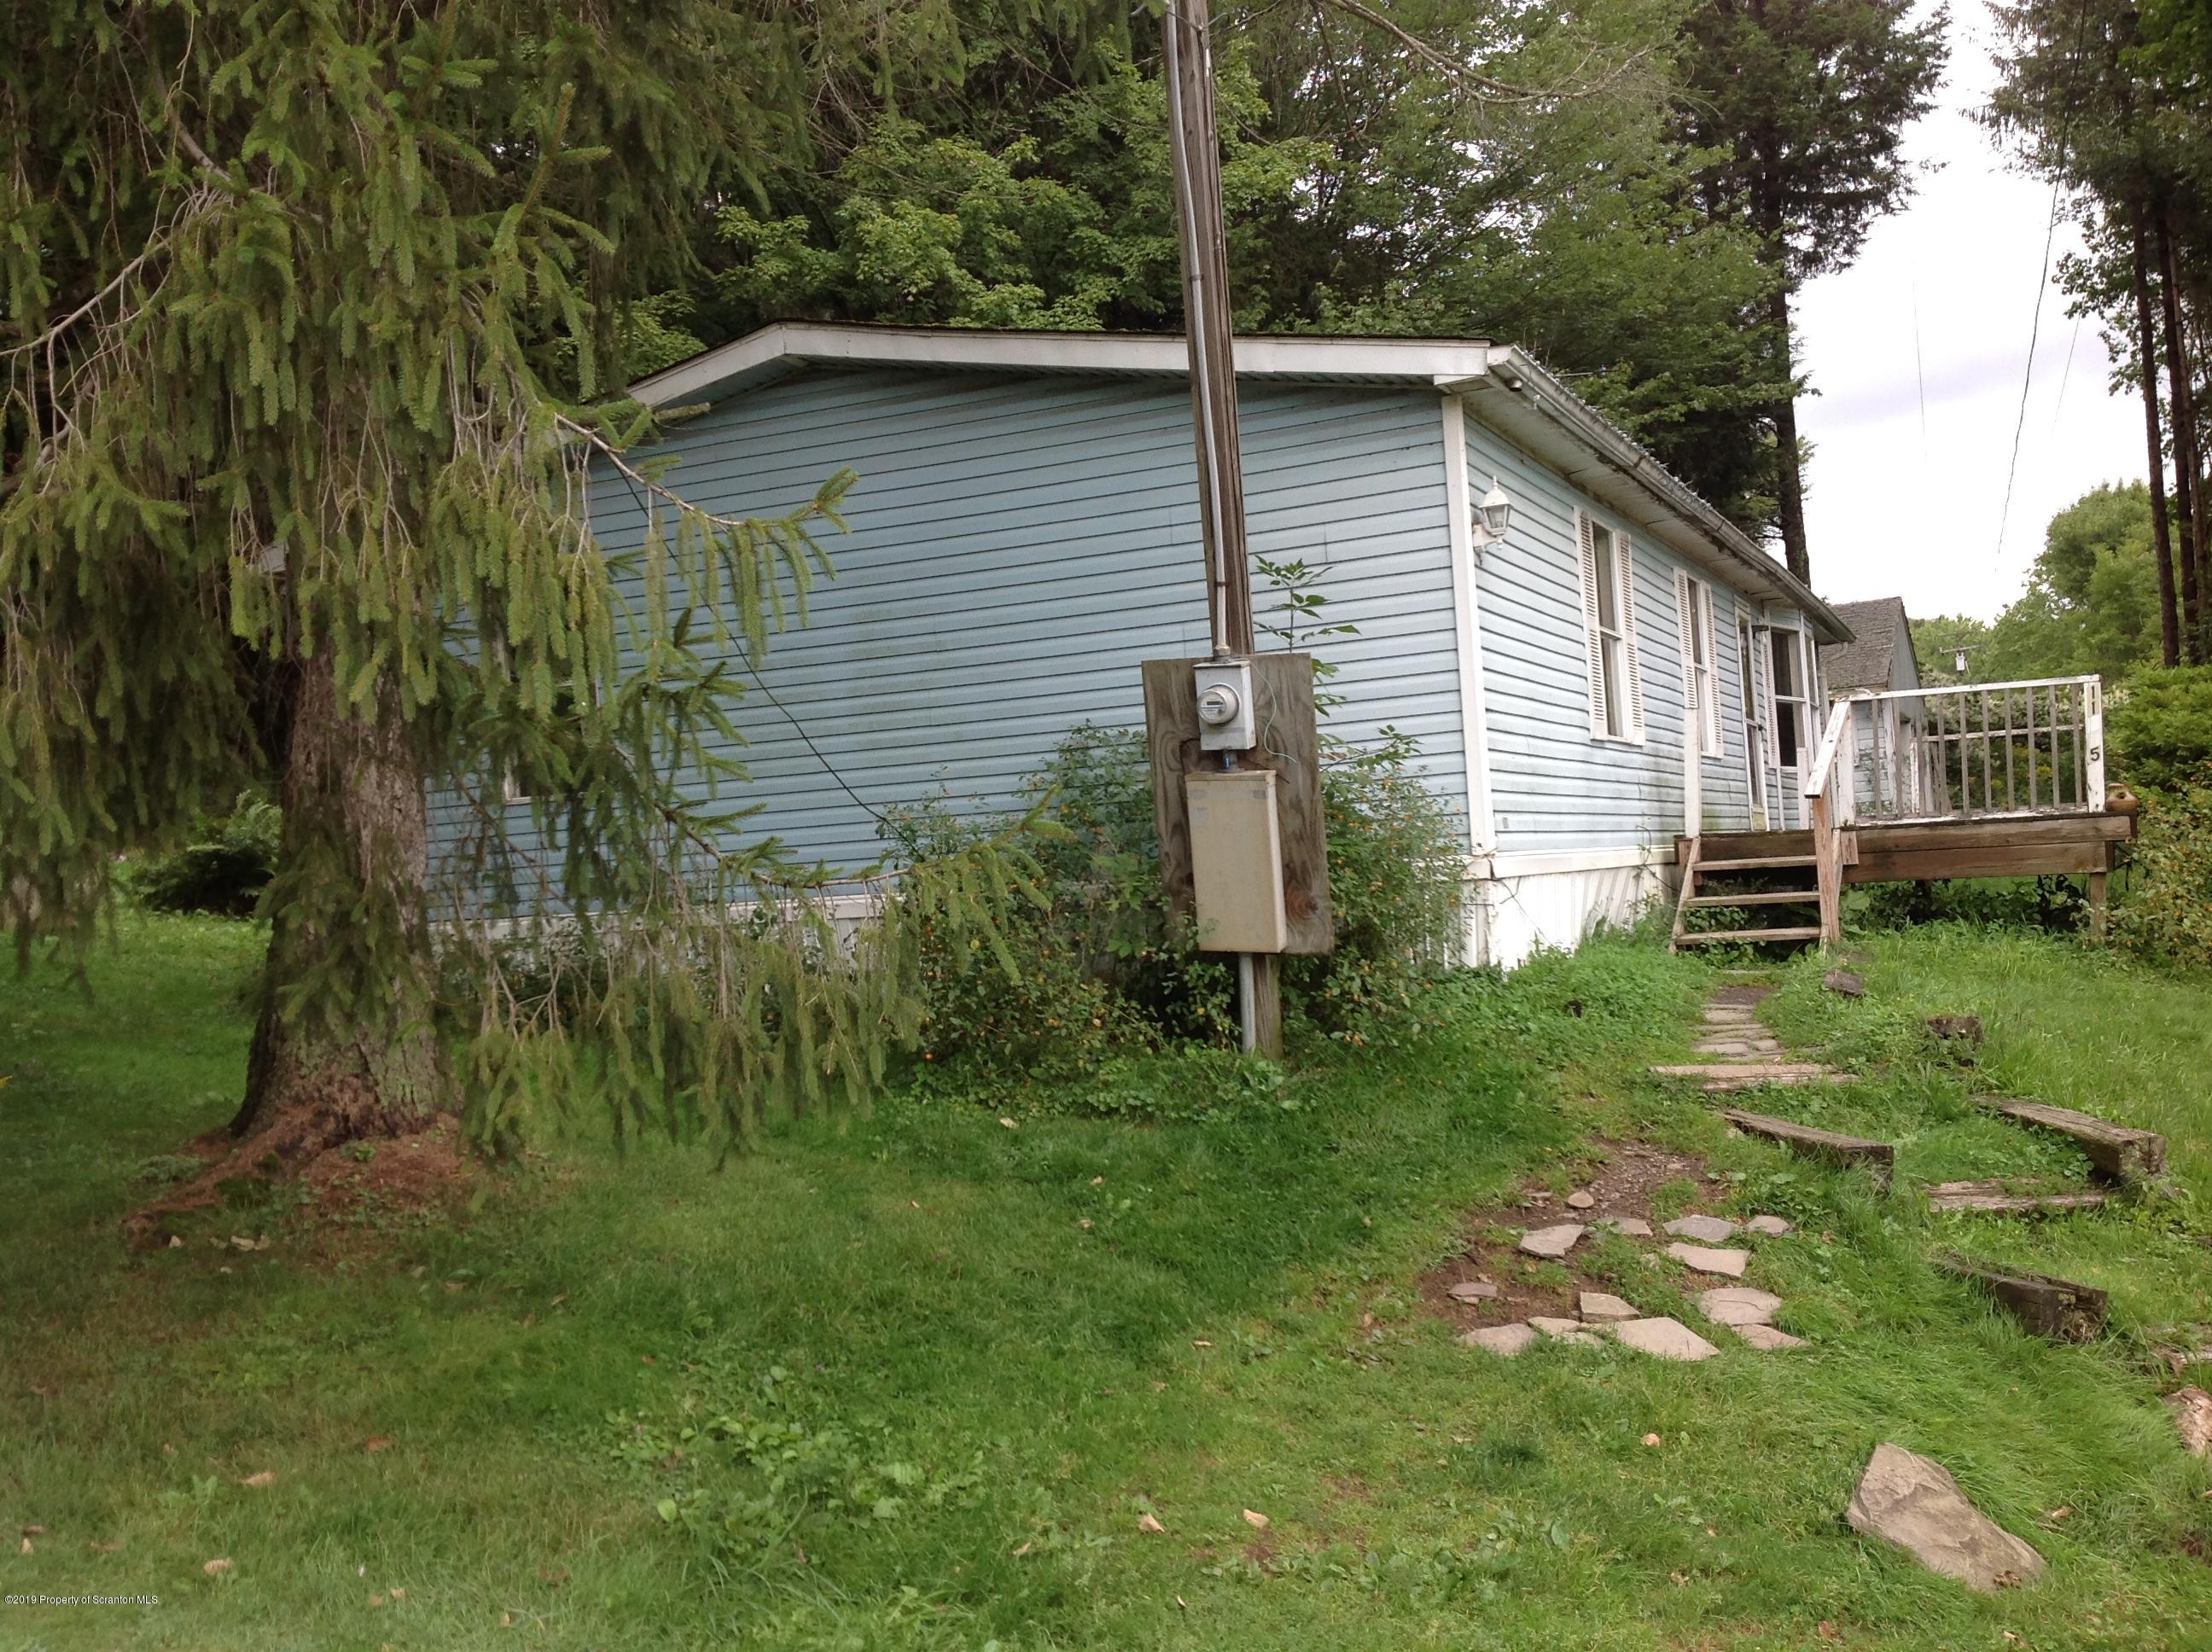 11715 Forest Lake Rd, Montrose, Pennsylvania 18801, 3 Bedrooms Bedrooms, 6 Rooms Rooms,2 BathroomsBathrooms,Single Family,For Sale,Forest Lake Rd,19-4269